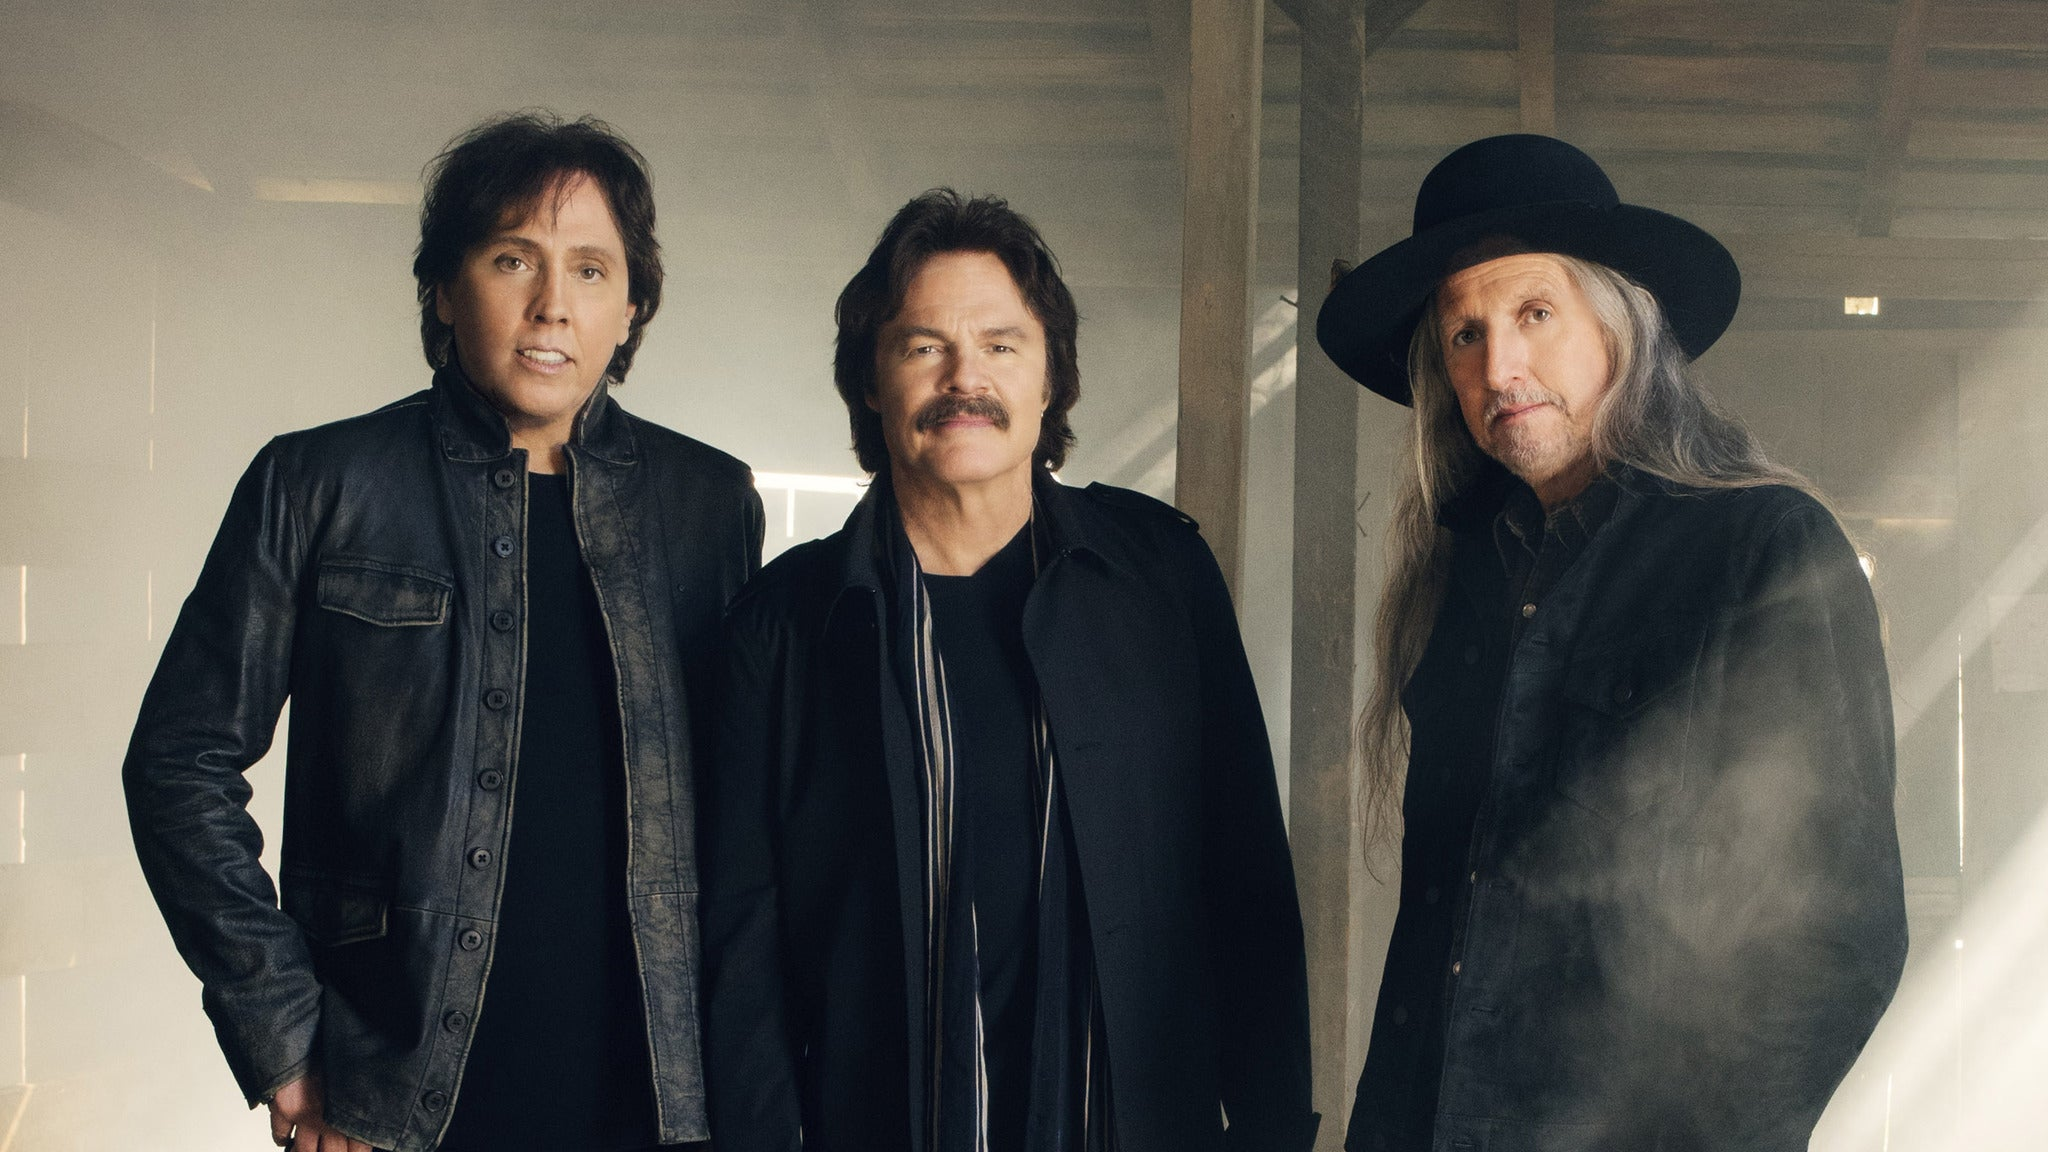 The Doobie Brothers - Meet & Greet Packages